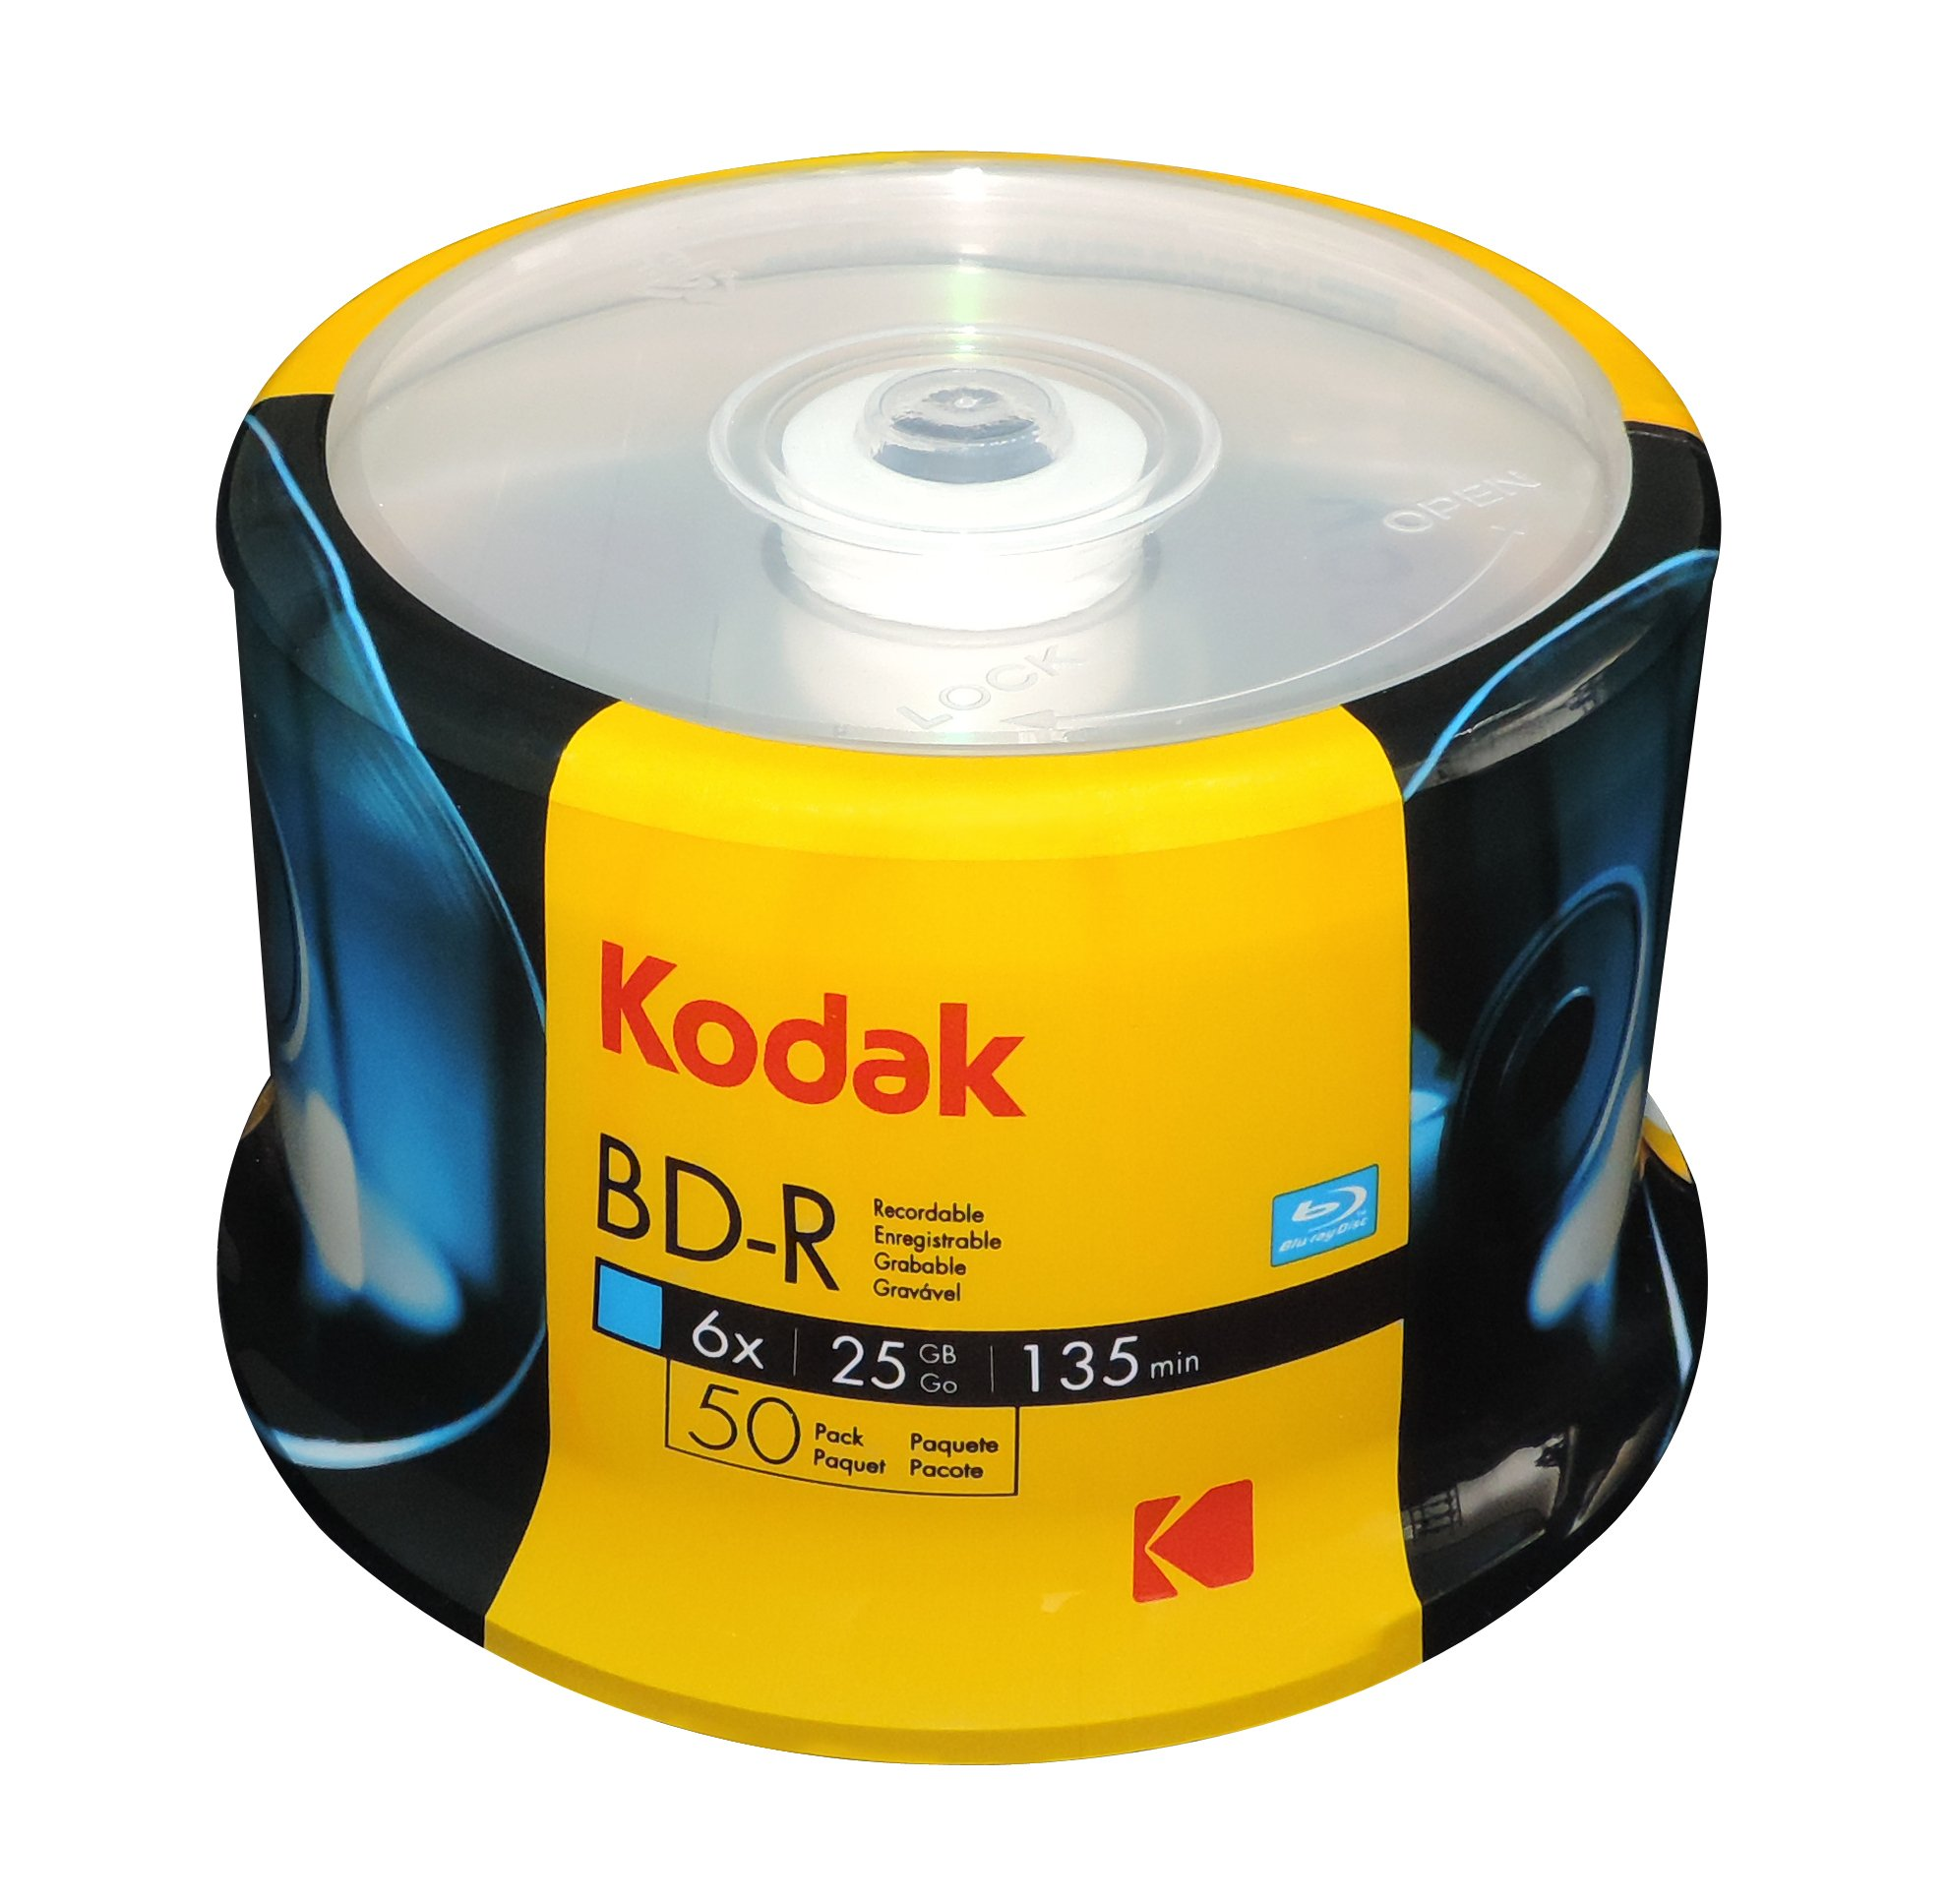 KODAK BD-R 6x 25GB 50-Pack Cakebox